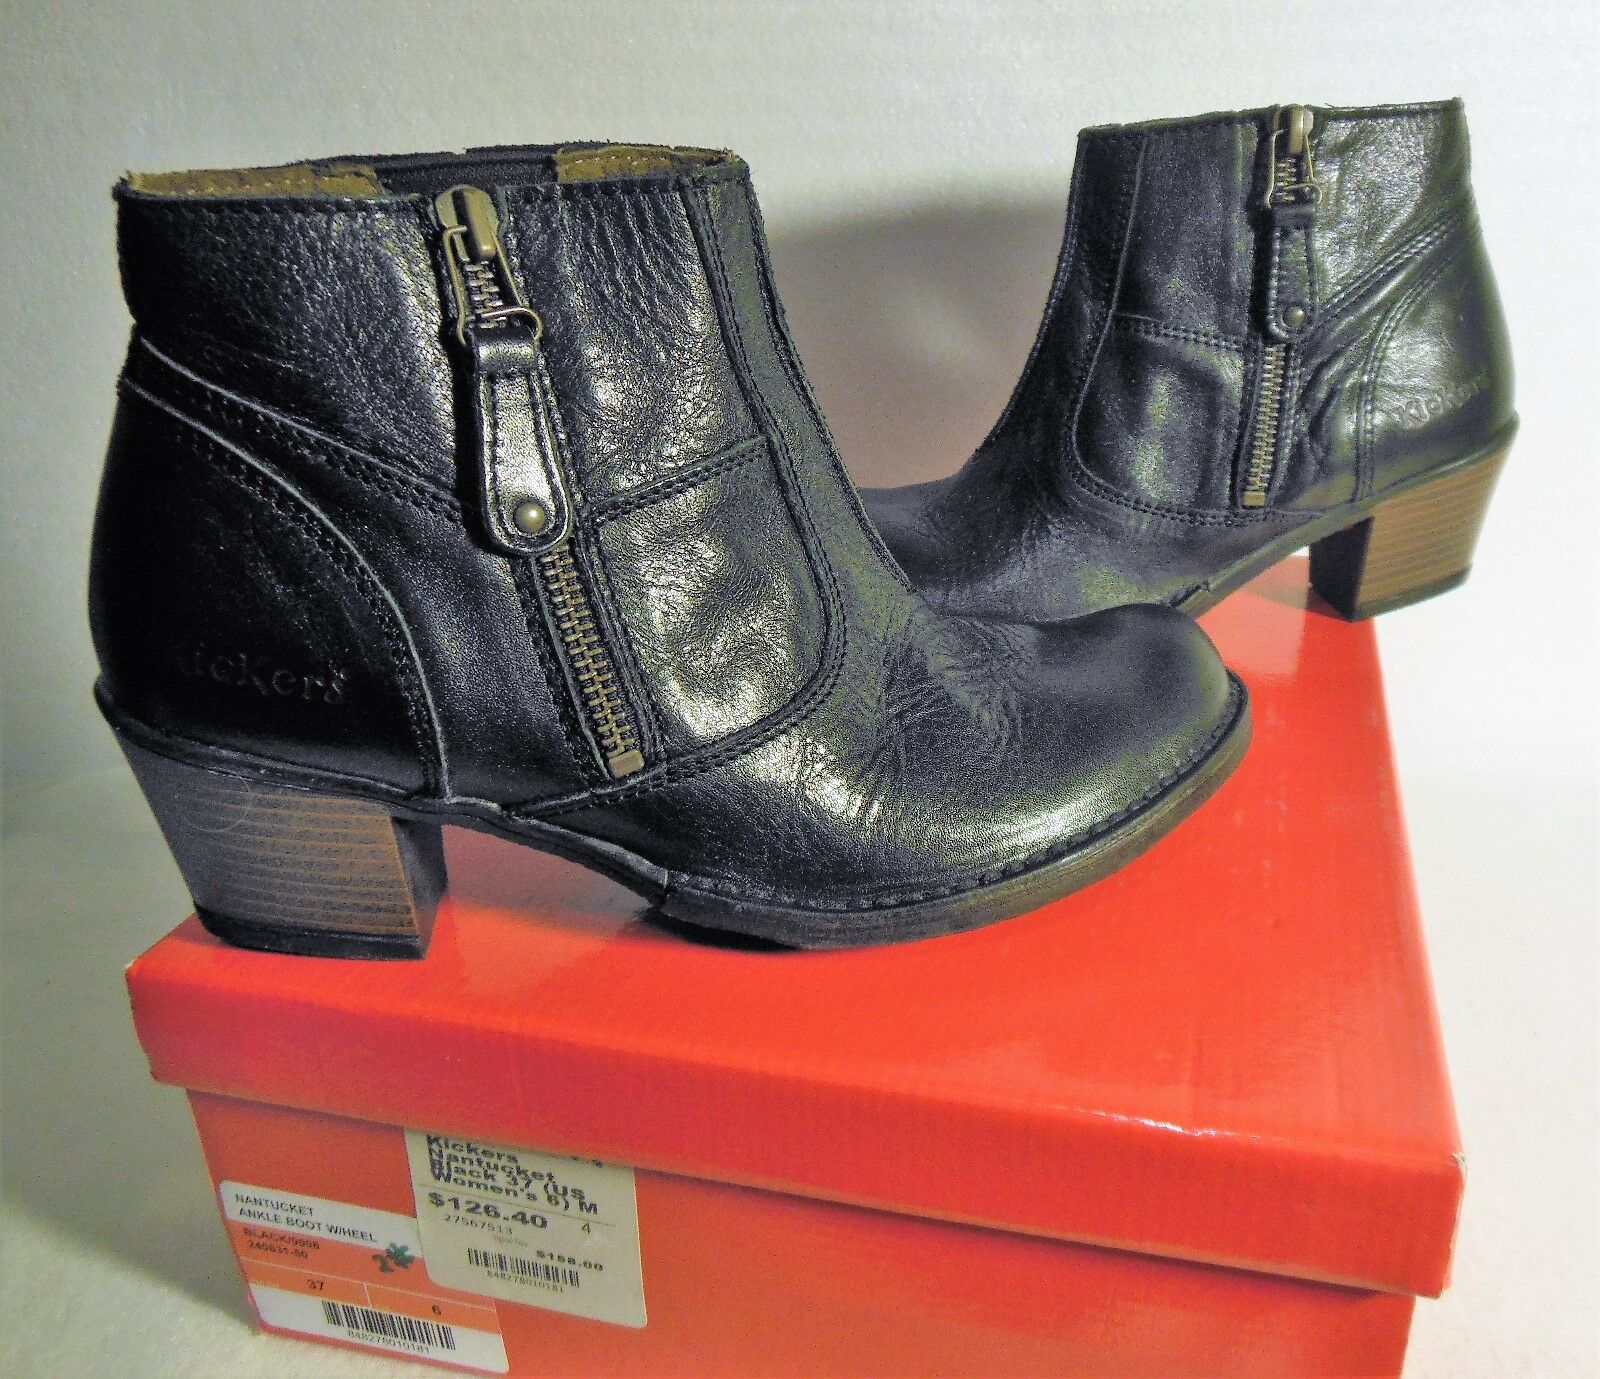 NIB Women's Black Kickers Nantucket Ankle Boot Size 6 M  (37)  MSRP 158